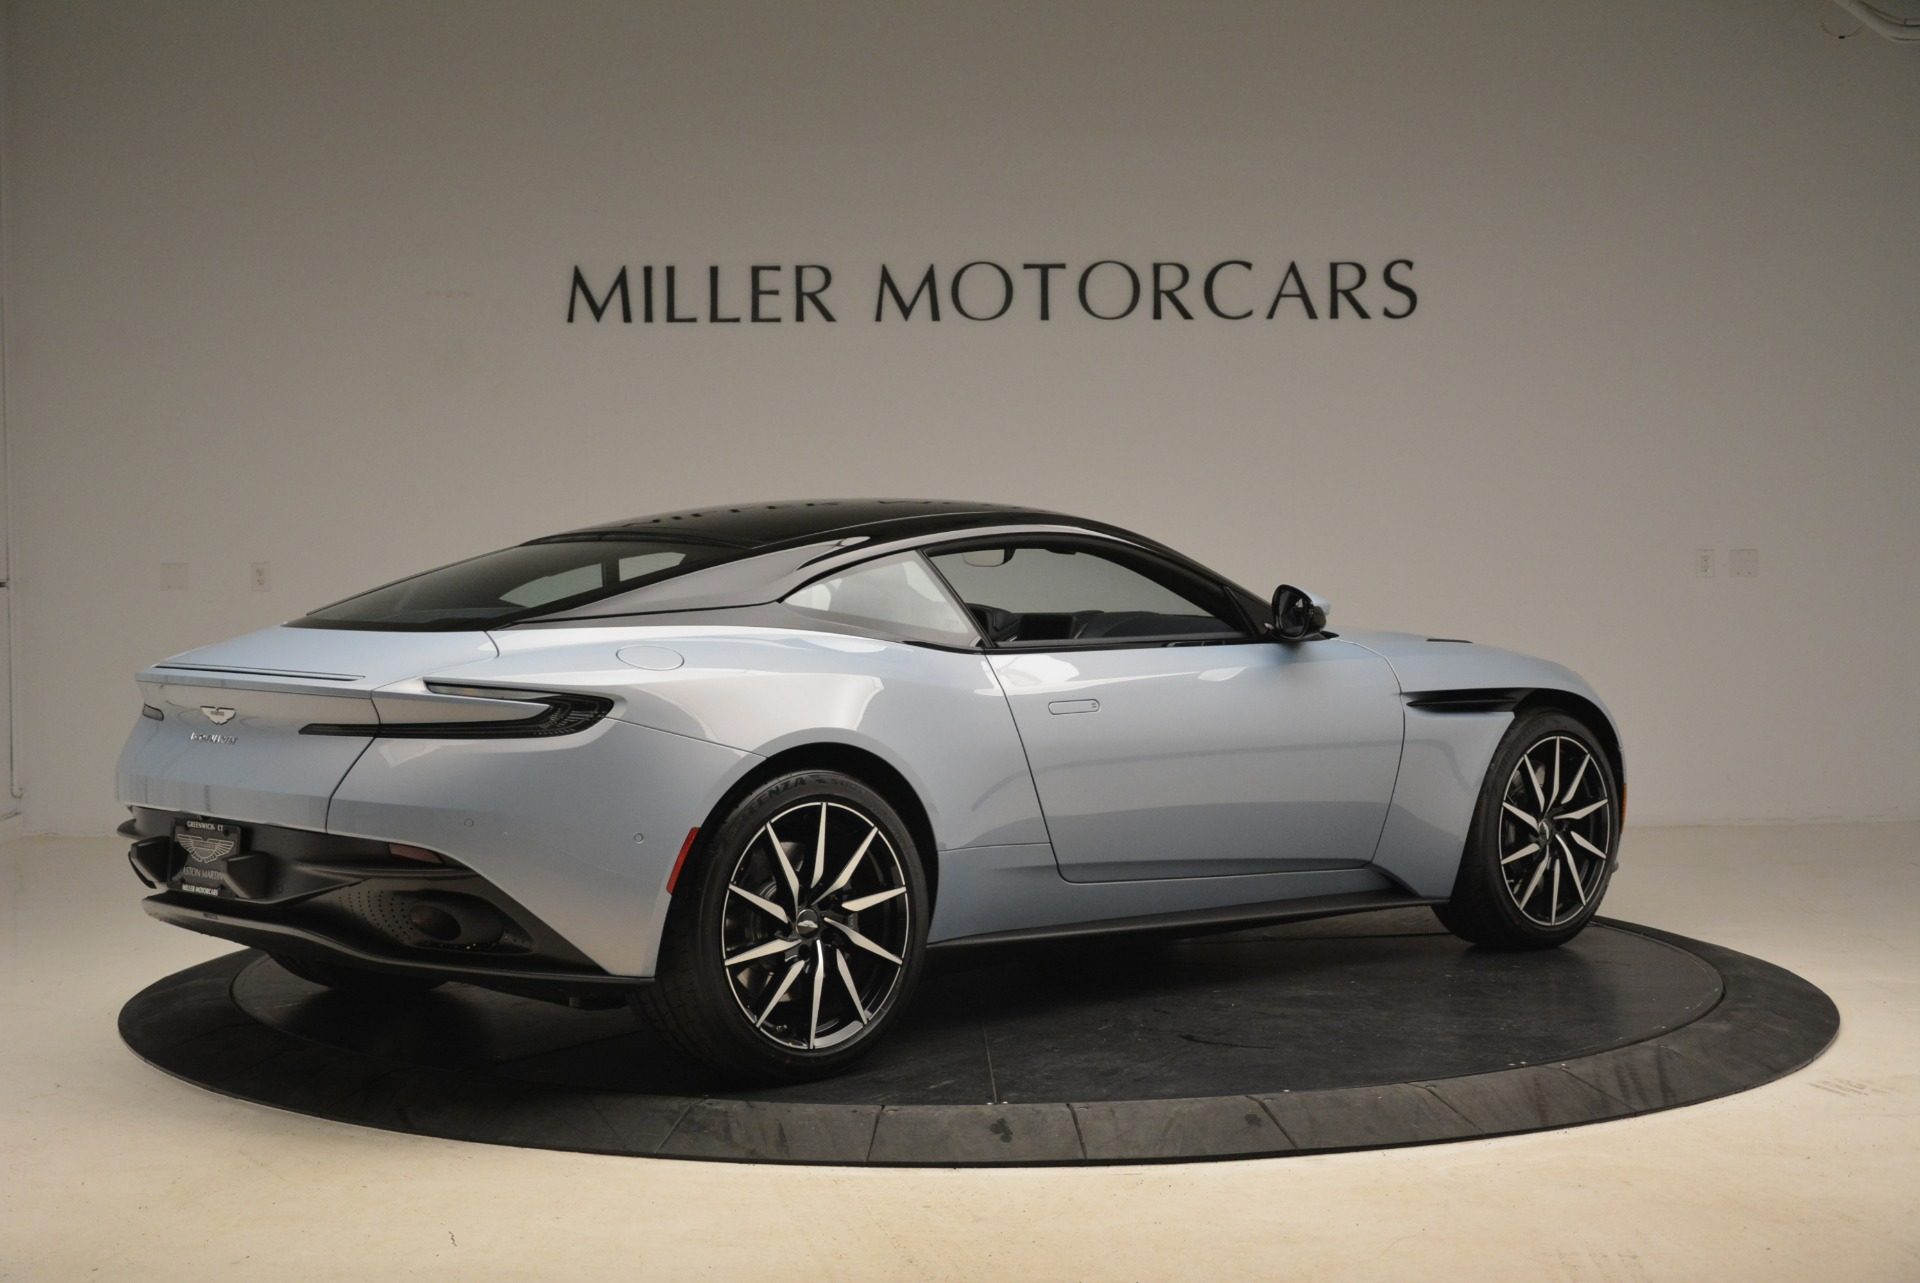 New 2018 Aston Martin DB11 V12 For Sale In Westport, CT 2225_p8